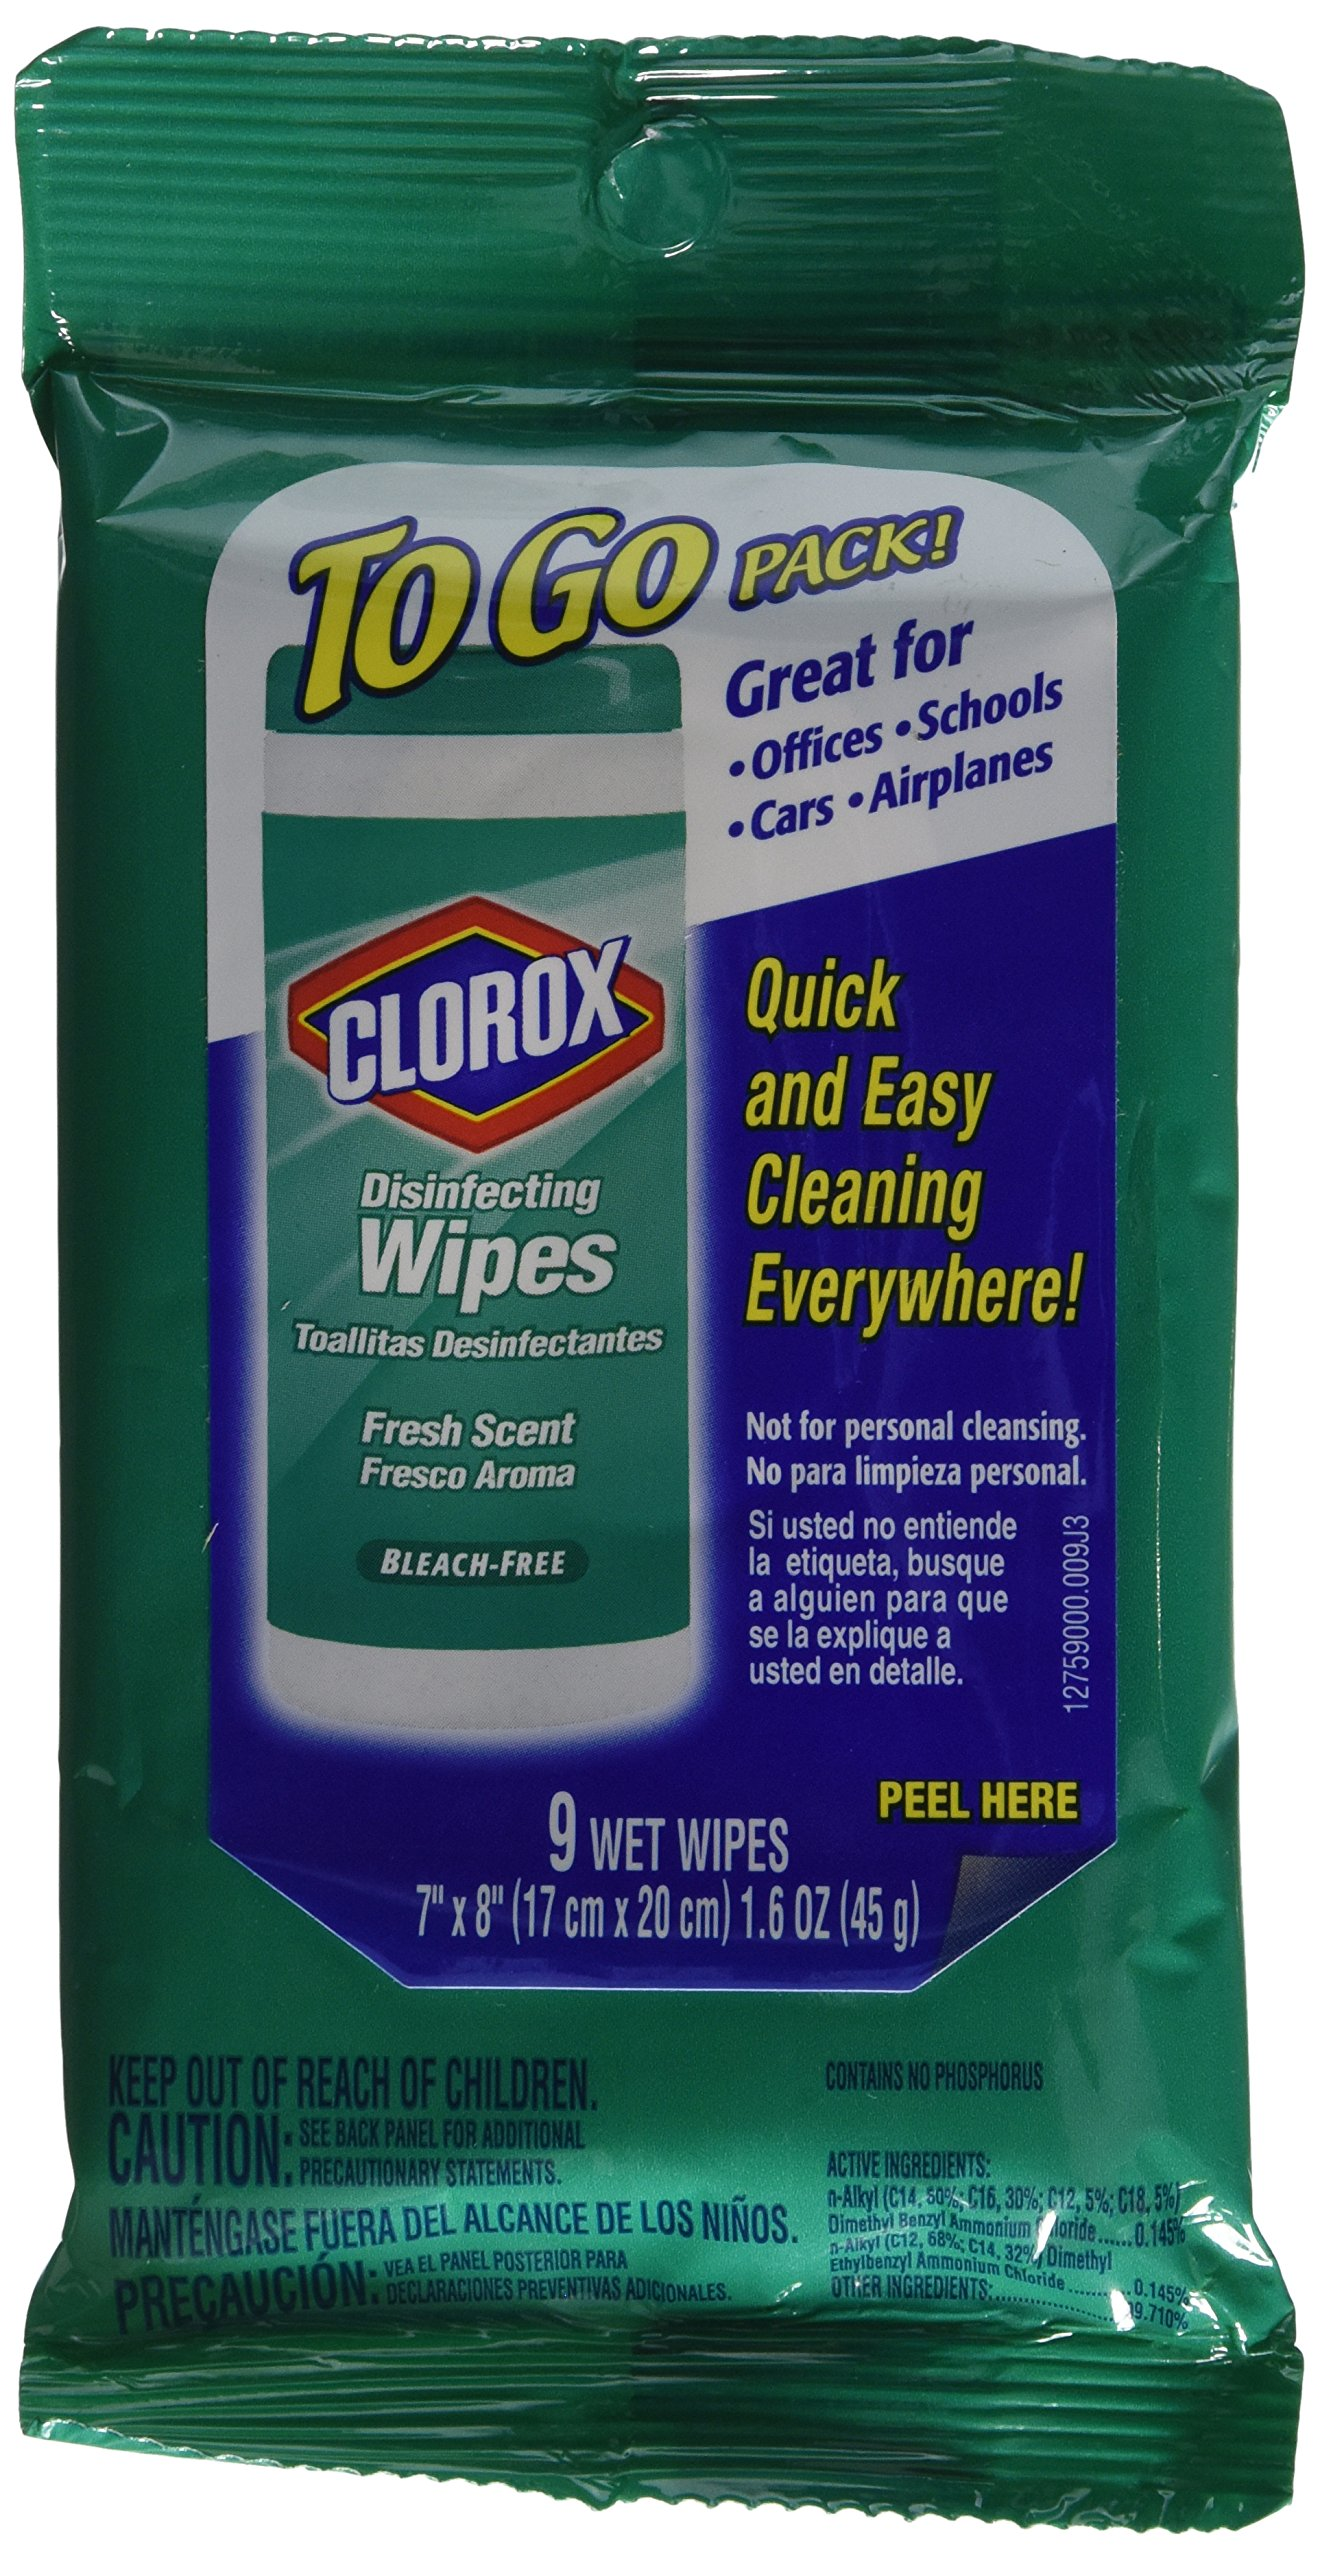 Clorox Disinfecting Wipes, Fresh Scent, To Go Pack!, 9 ct. (6 Pack)